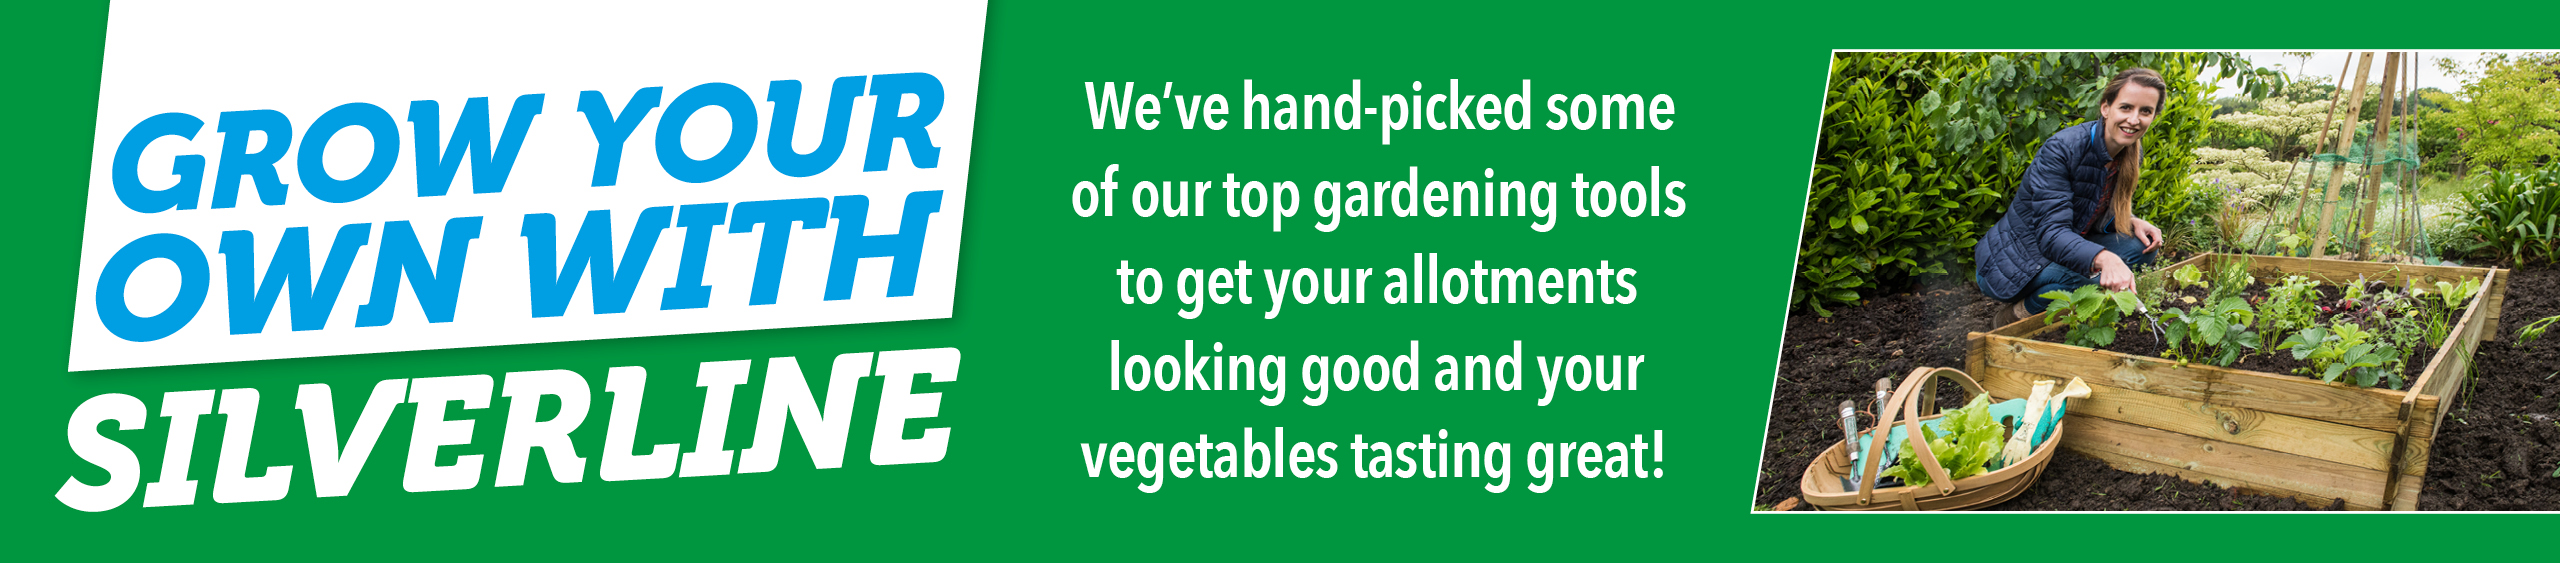 Silverline_Tools_Gardening_Allotment